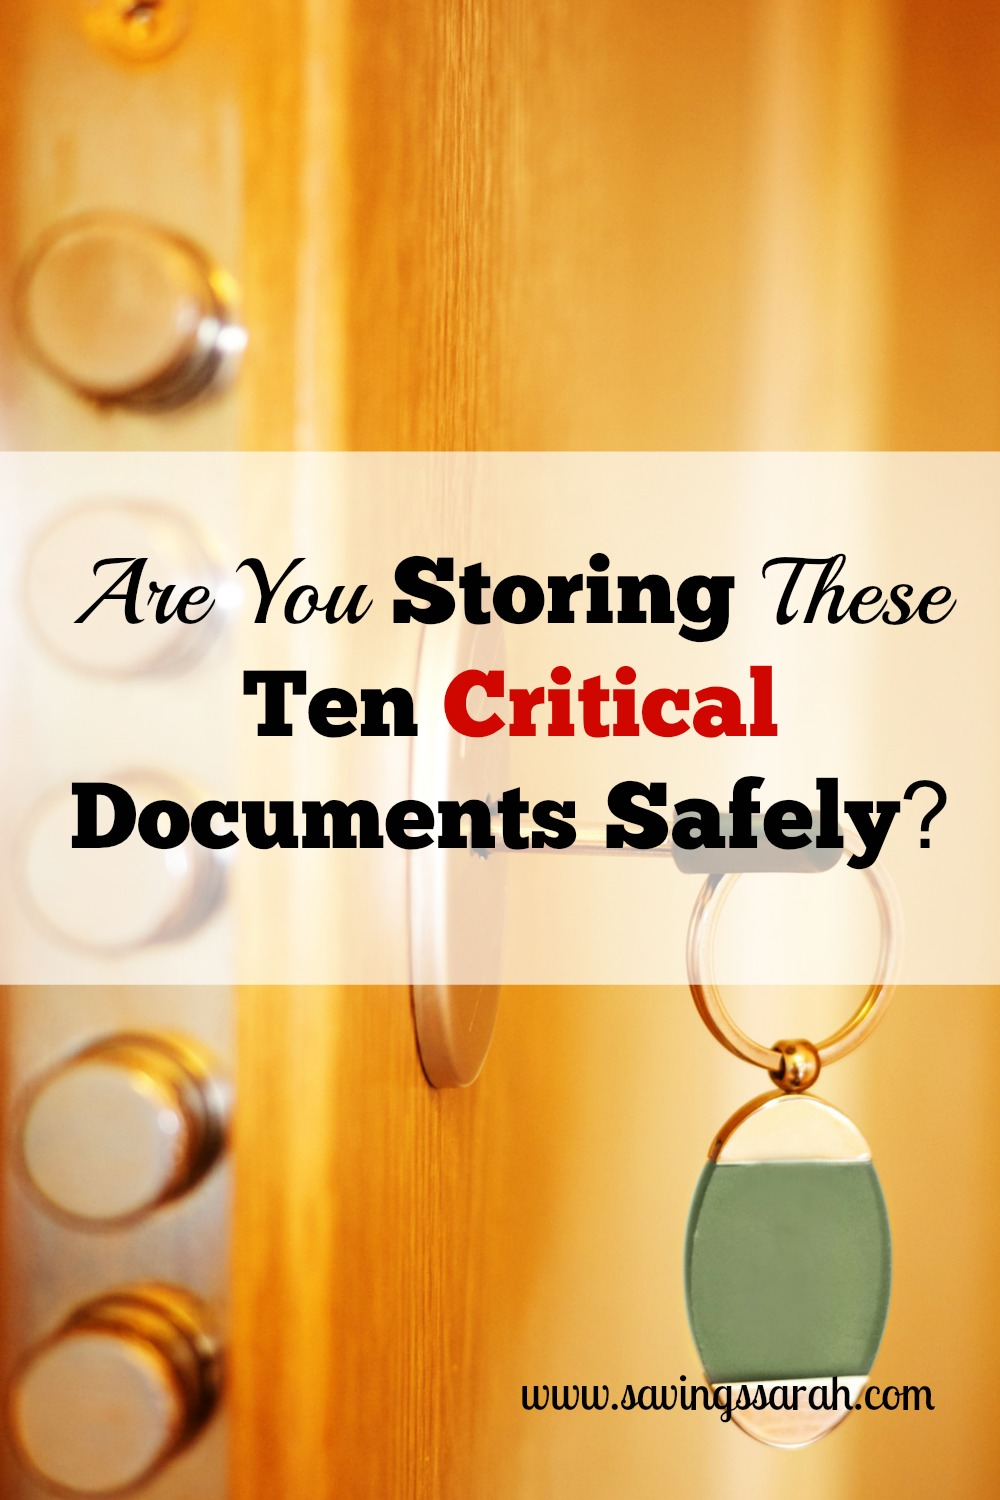 Are You Storing These 10 Critical Documents Safely?